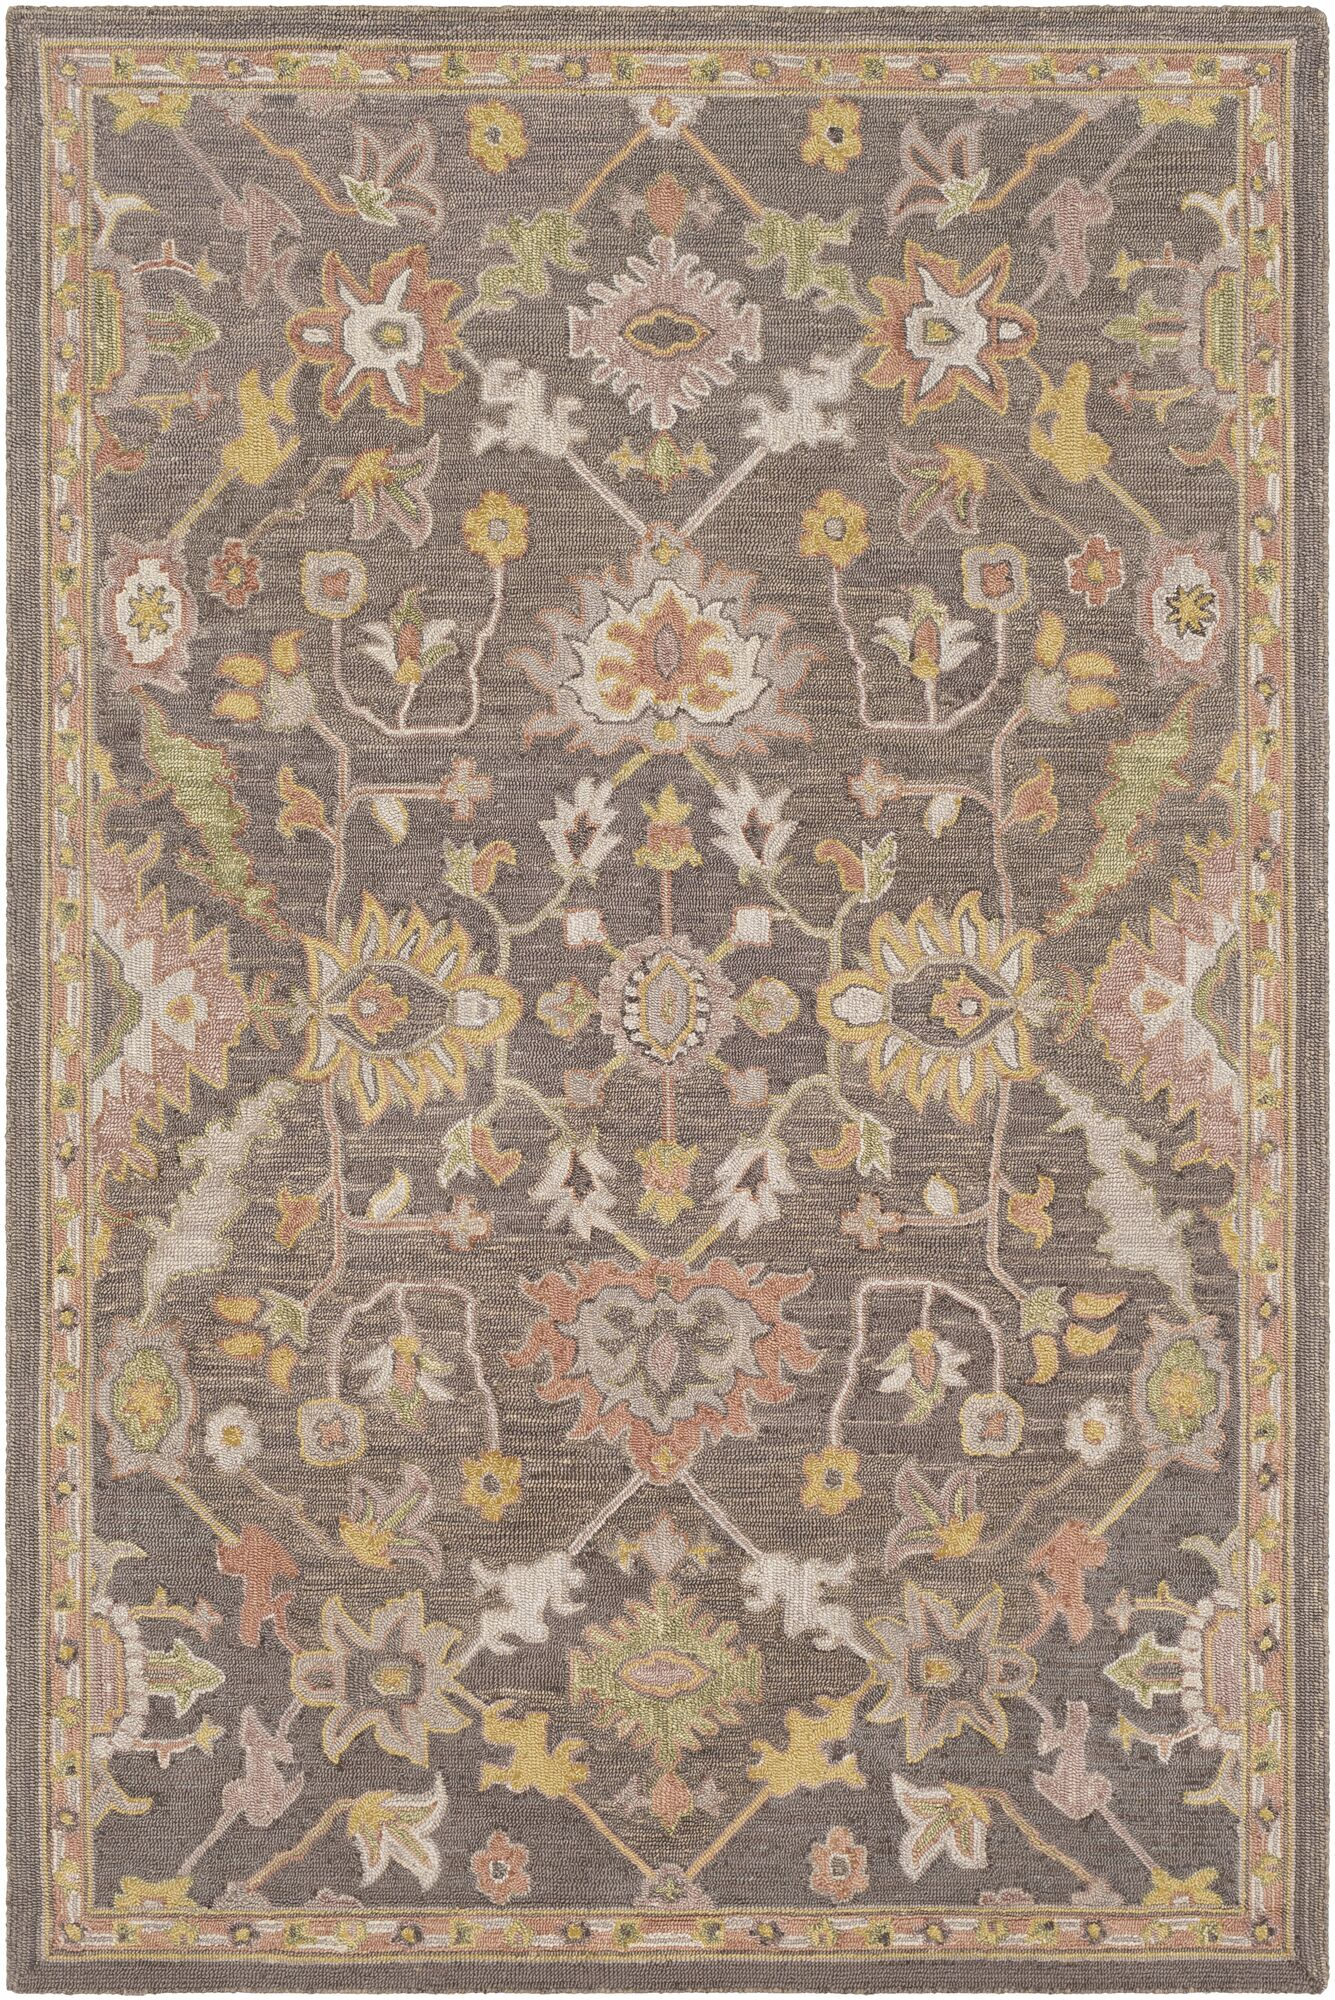 Greater Taree Hand Hooked Wool Camel/Olive Area Rug Rug Size: Rectangle 8' x 10'